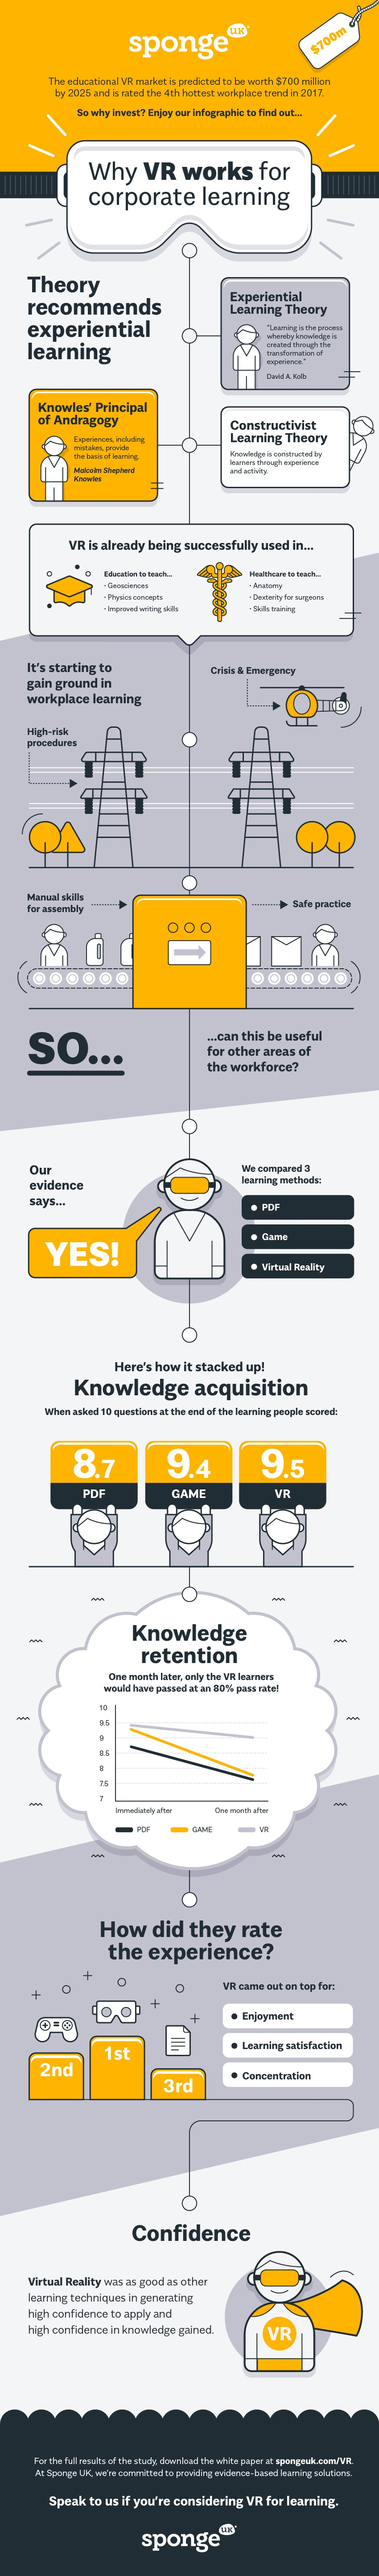 Why Virtual Reality Works for Corporate Learning Infographic